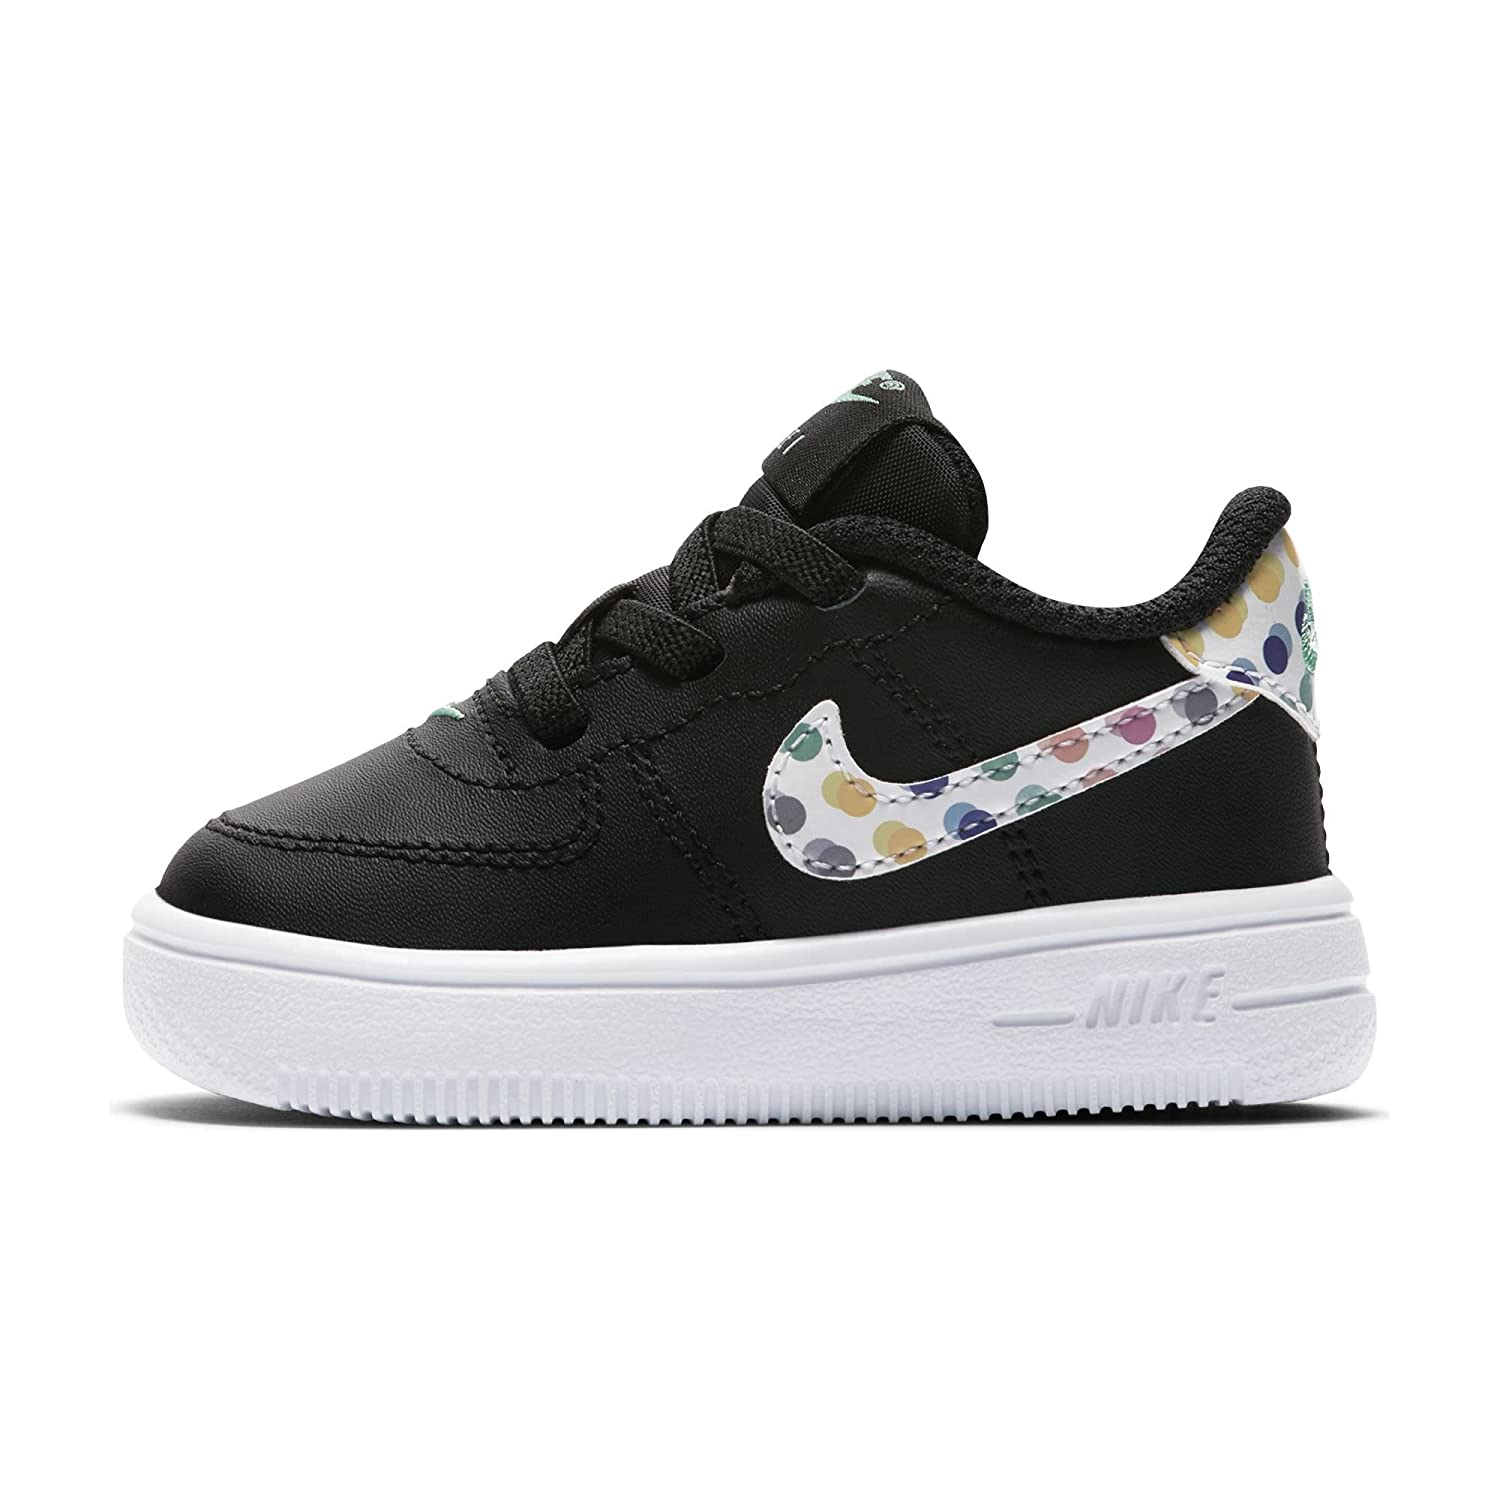 Nike Air Force 1 rsquo;18 Print TD Retro, Schuhe Herren  21 EU|Black/White-green Glow